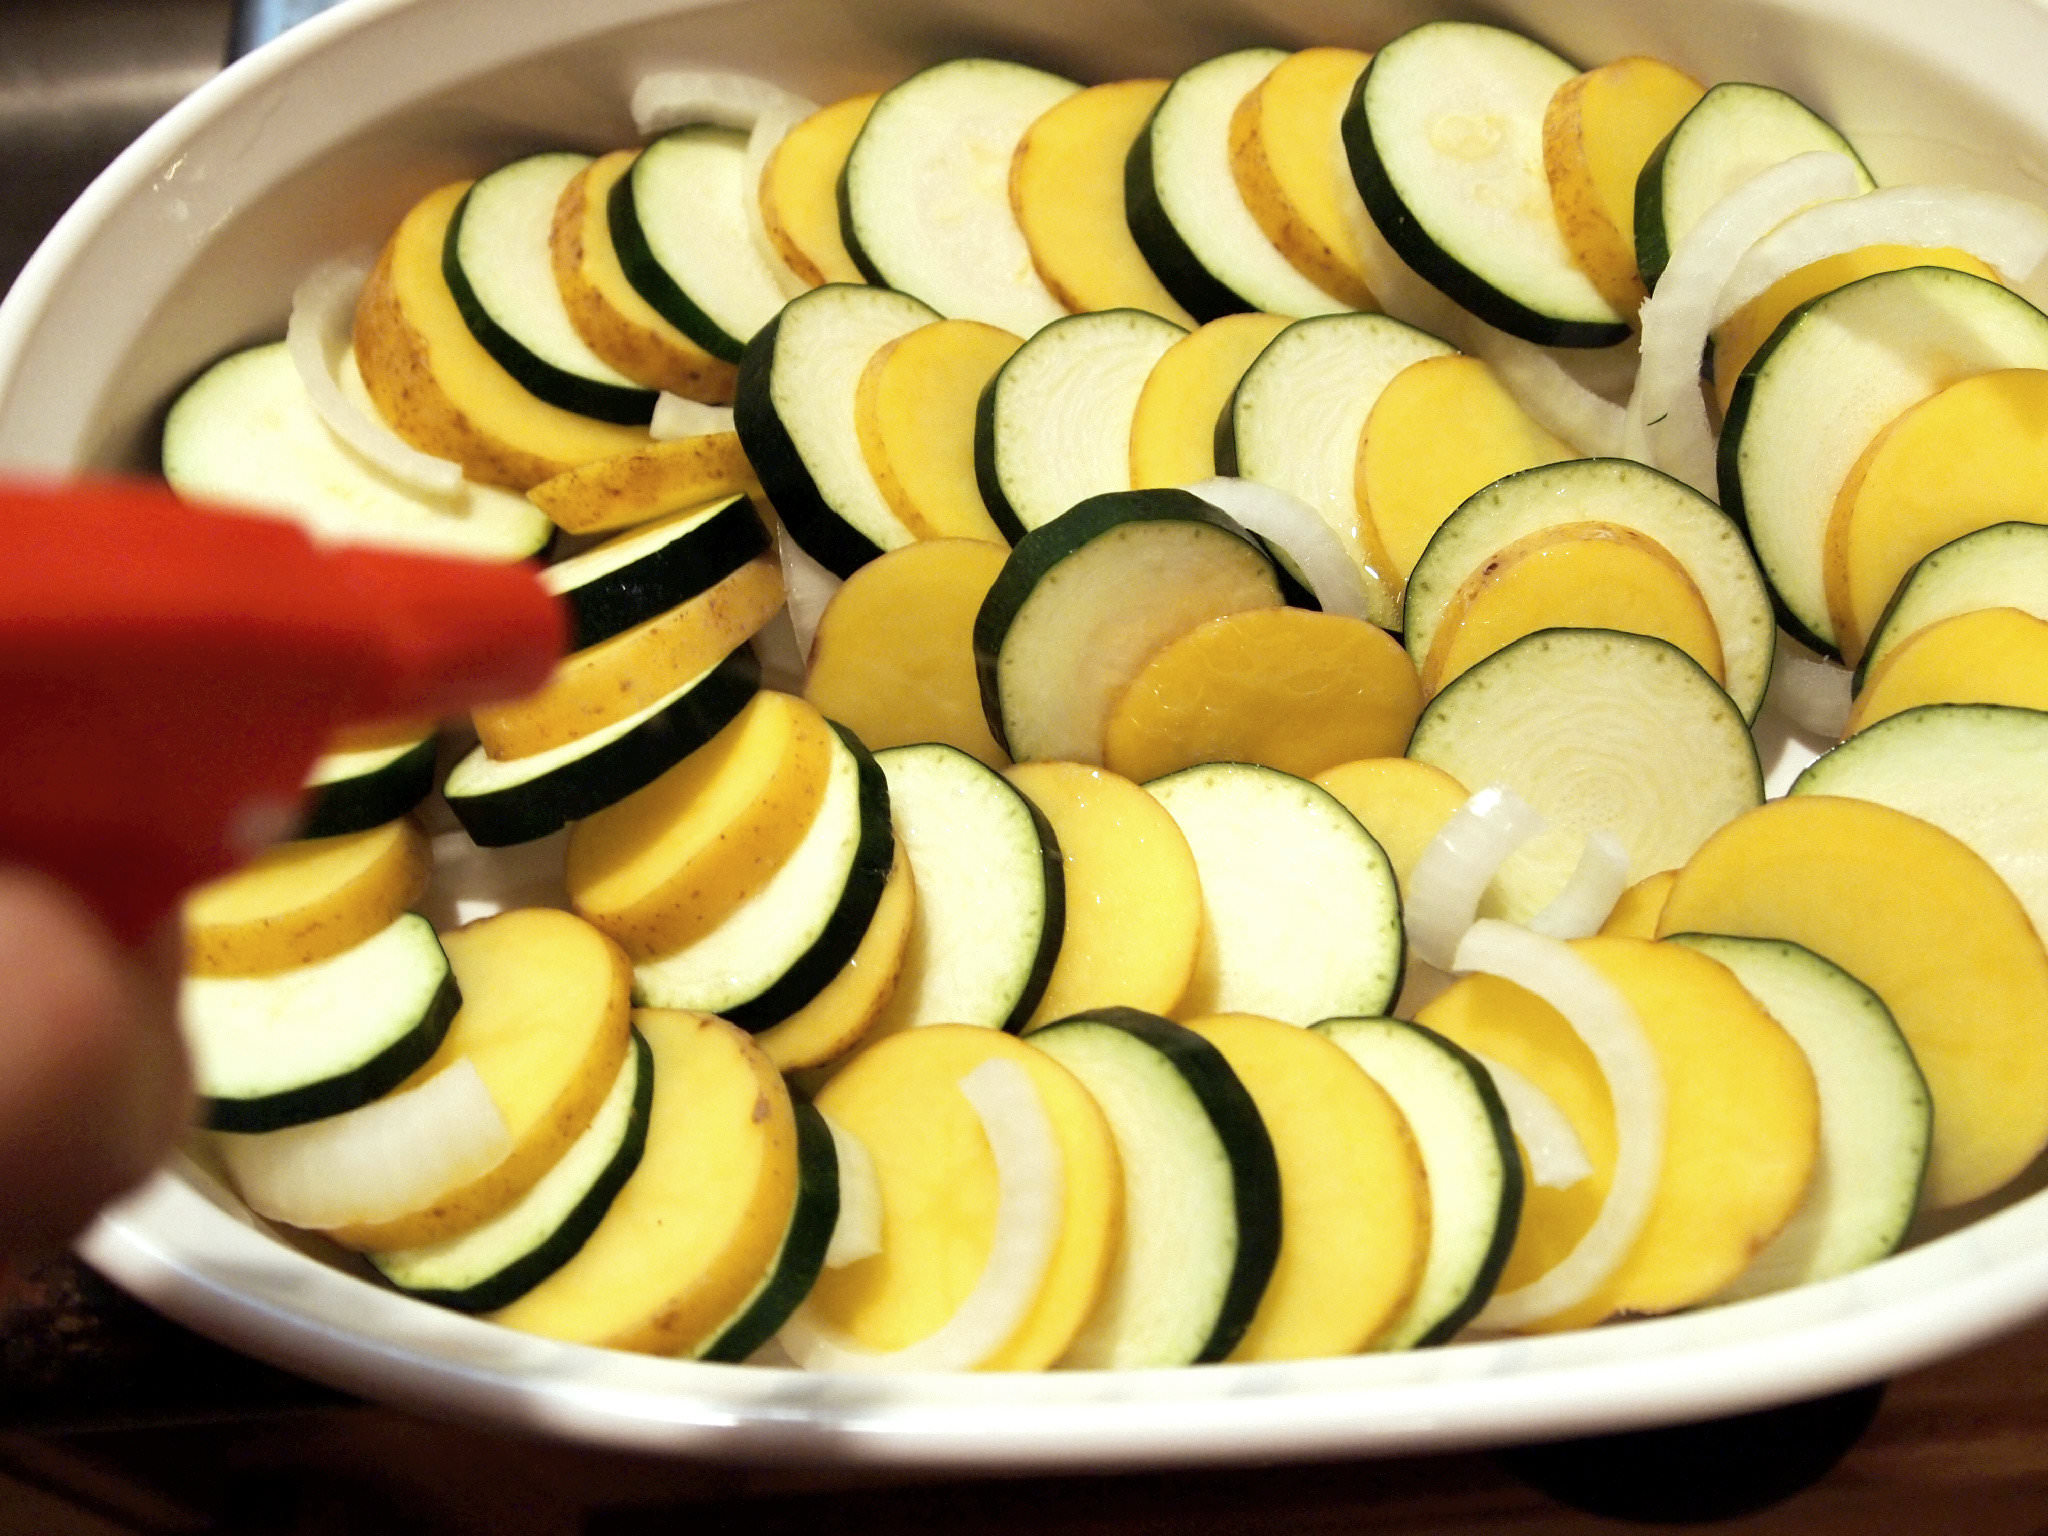 Layered squash and potatoes